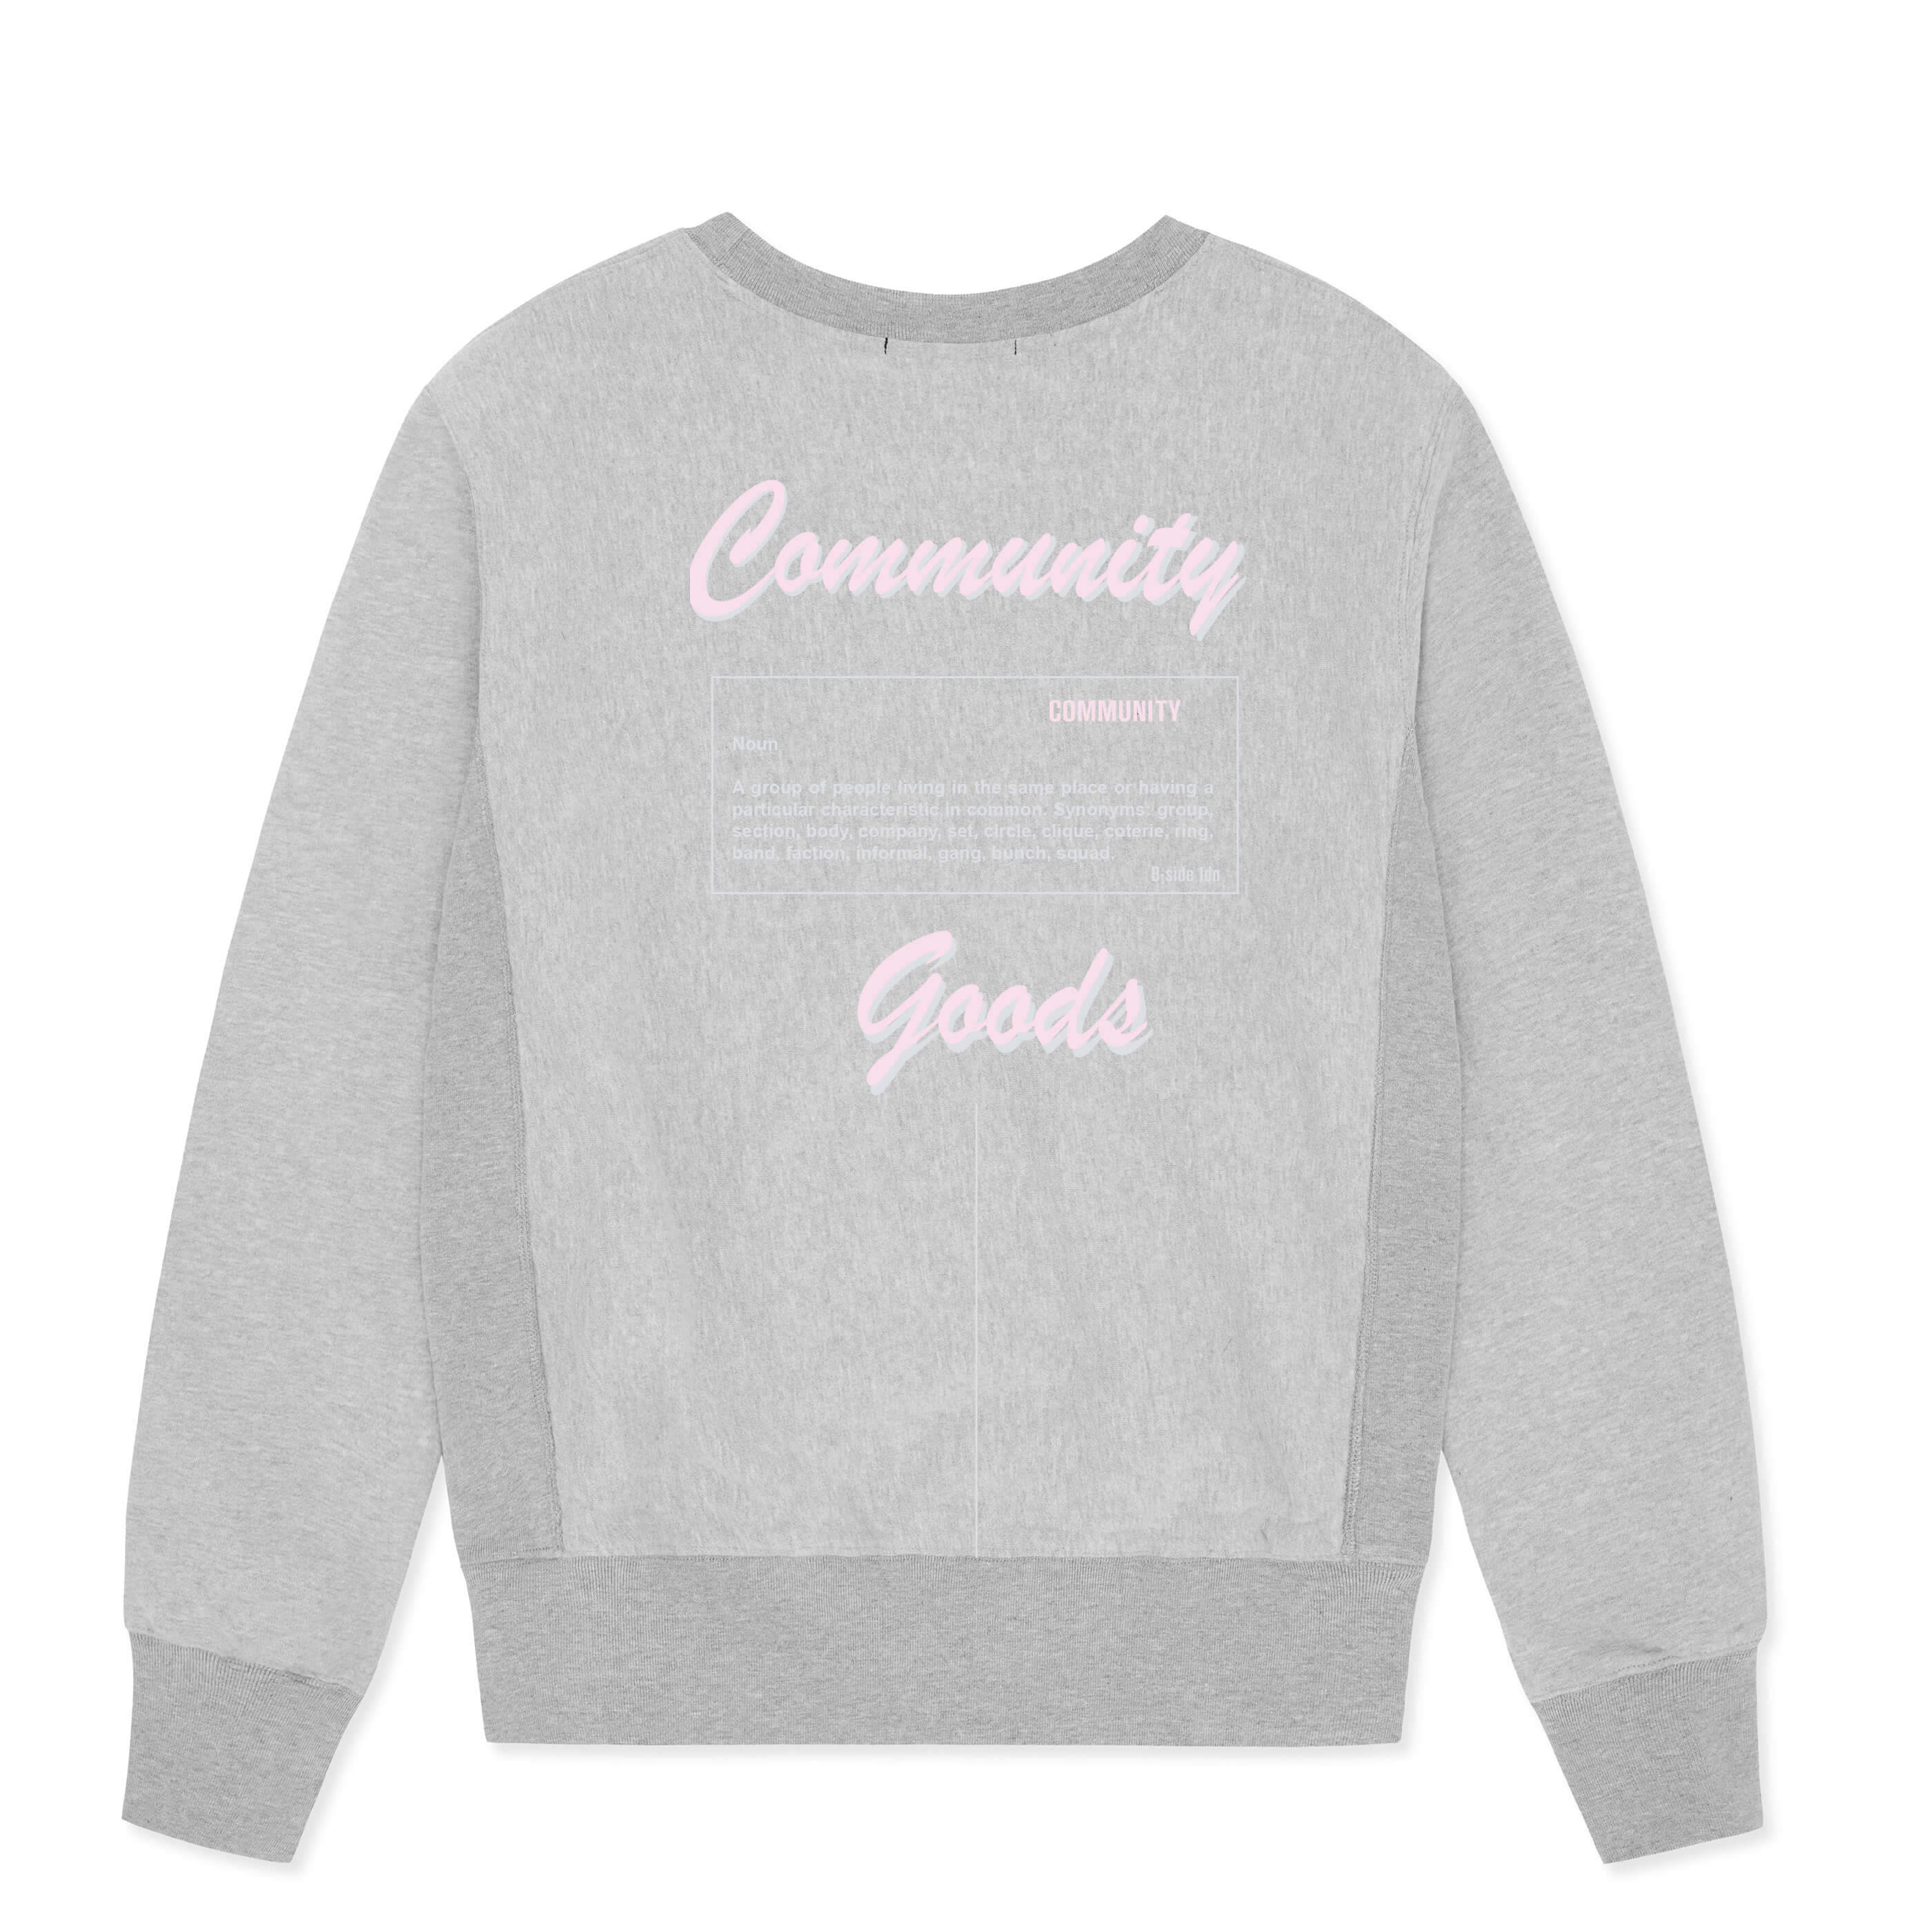 GREY CREWNECK COMMUNITY HEAVY SWEAT | PINK LOGO | B-sidebywale